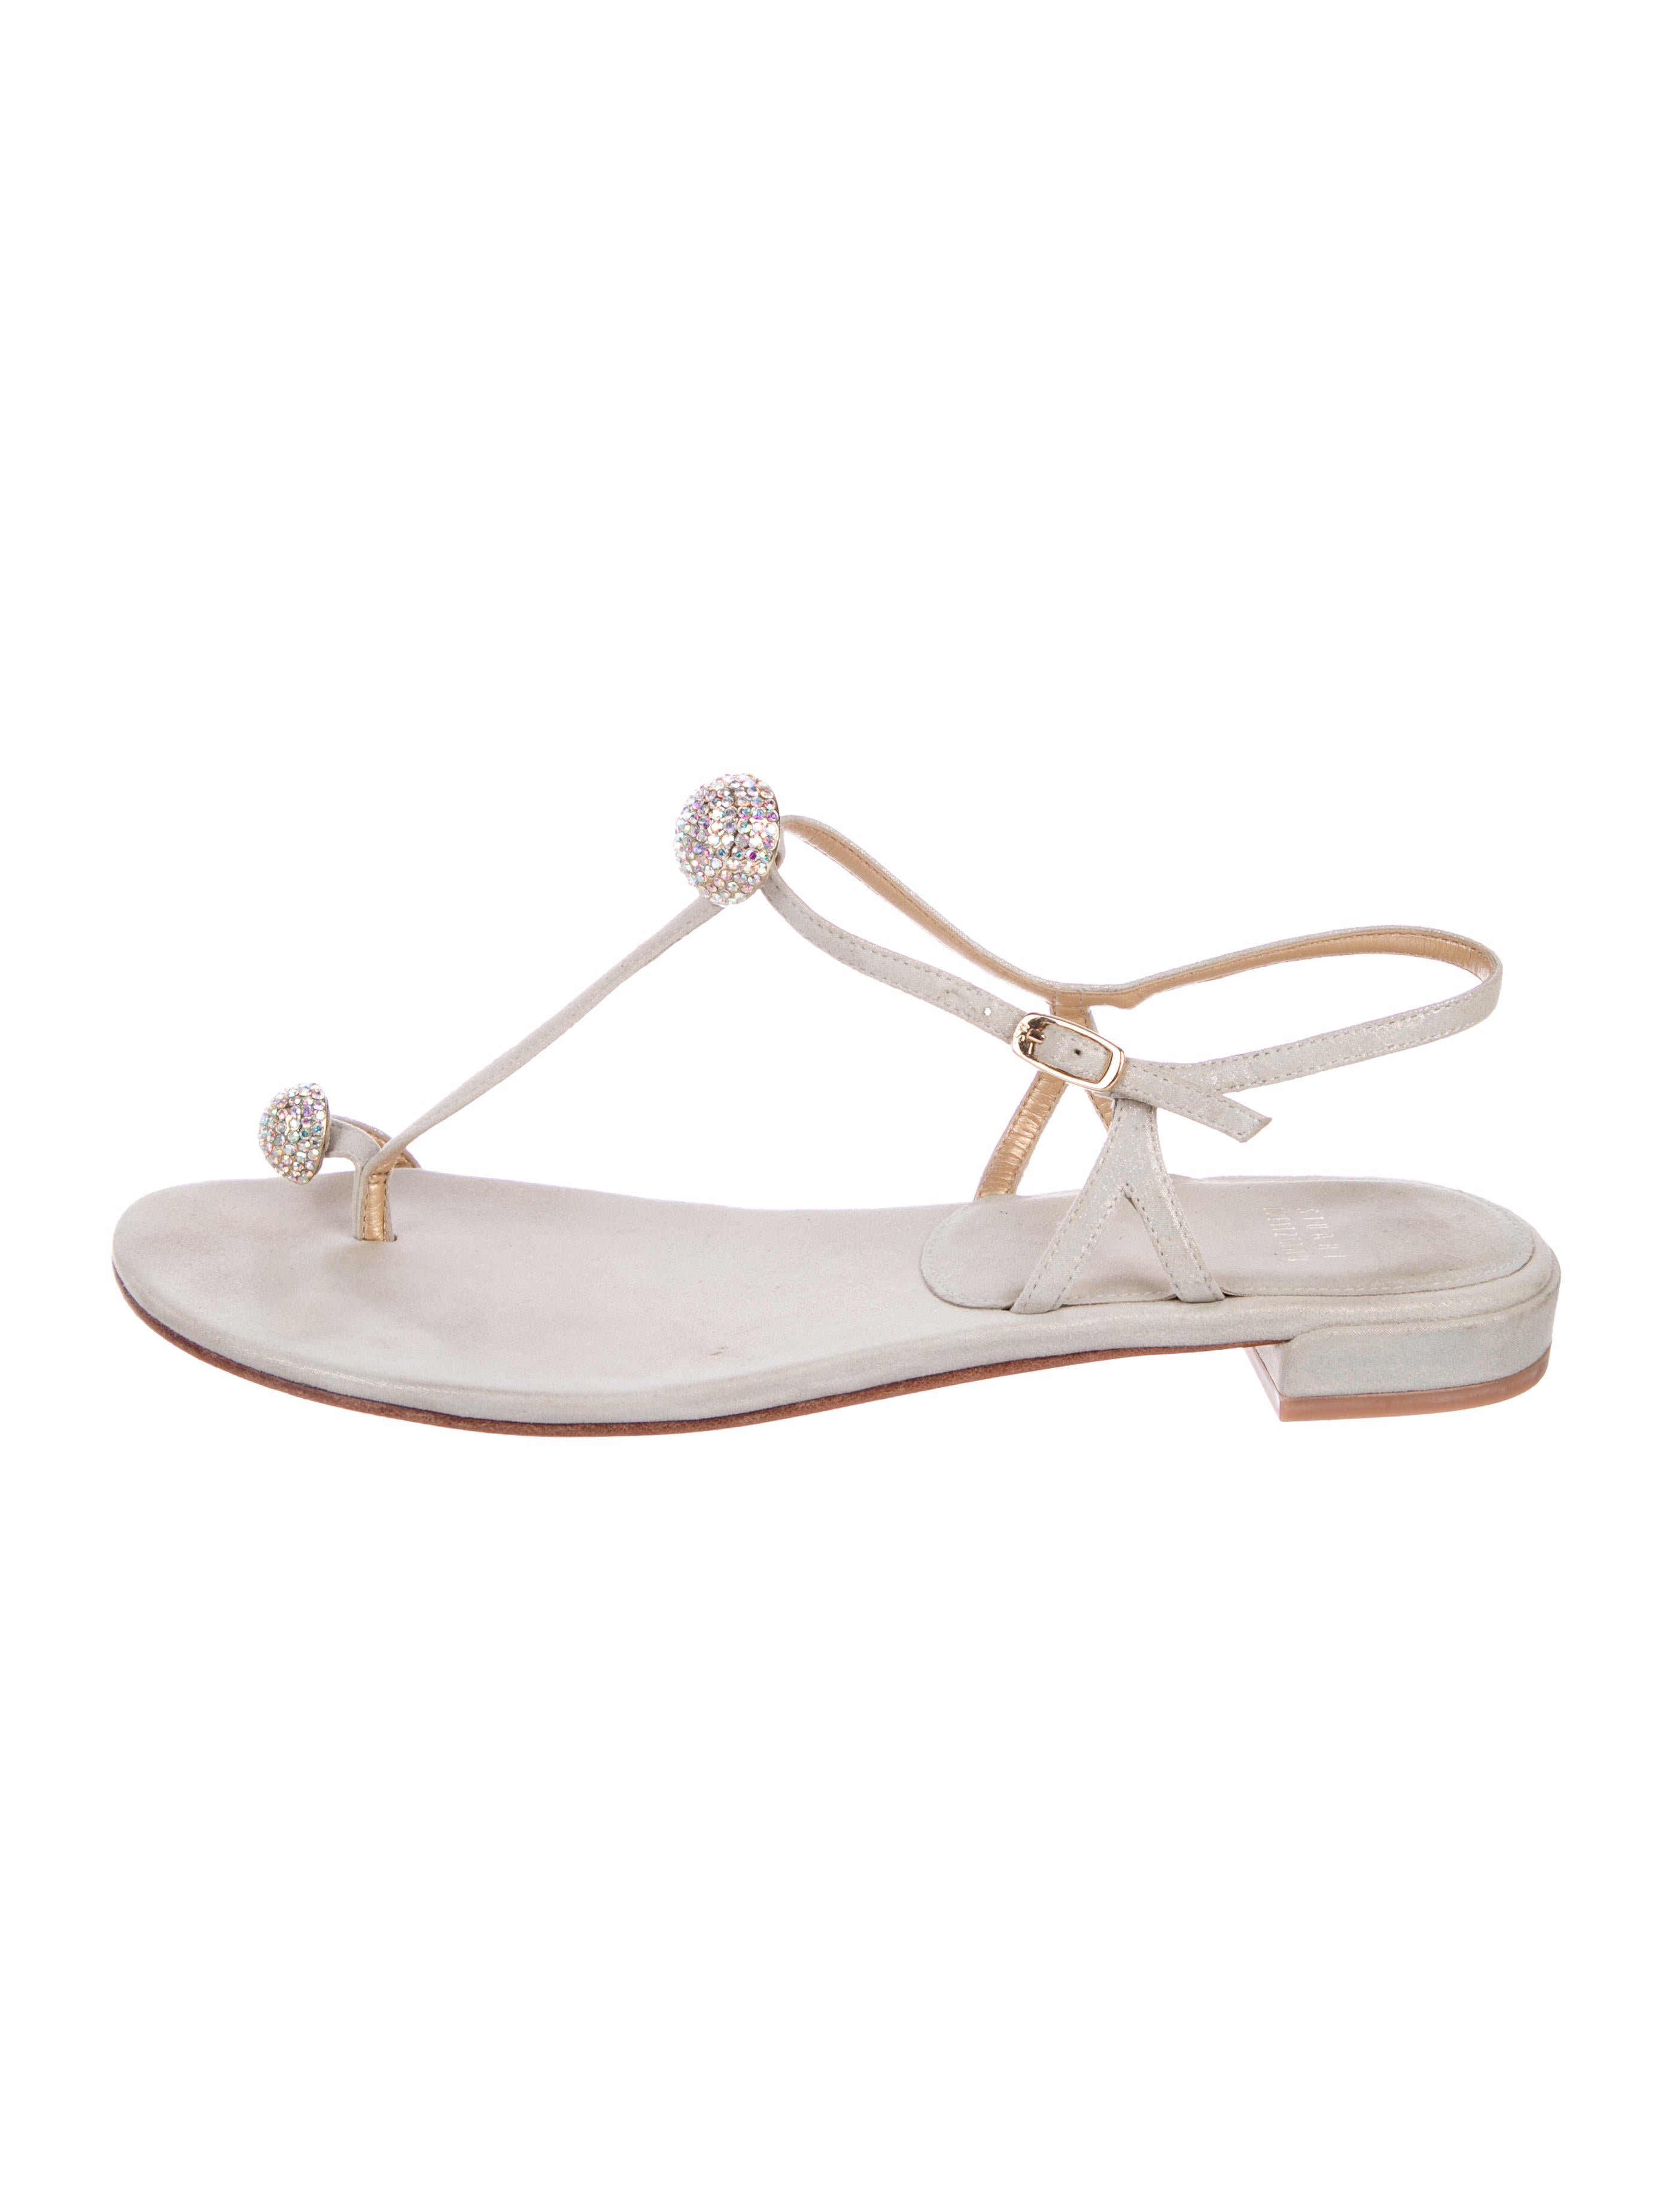 low price fee shipping cheap price Stuart Weitzman Balls Of Fire Iridescent Sandals clearance manchester great sale discount newest for cheap Il2EkR